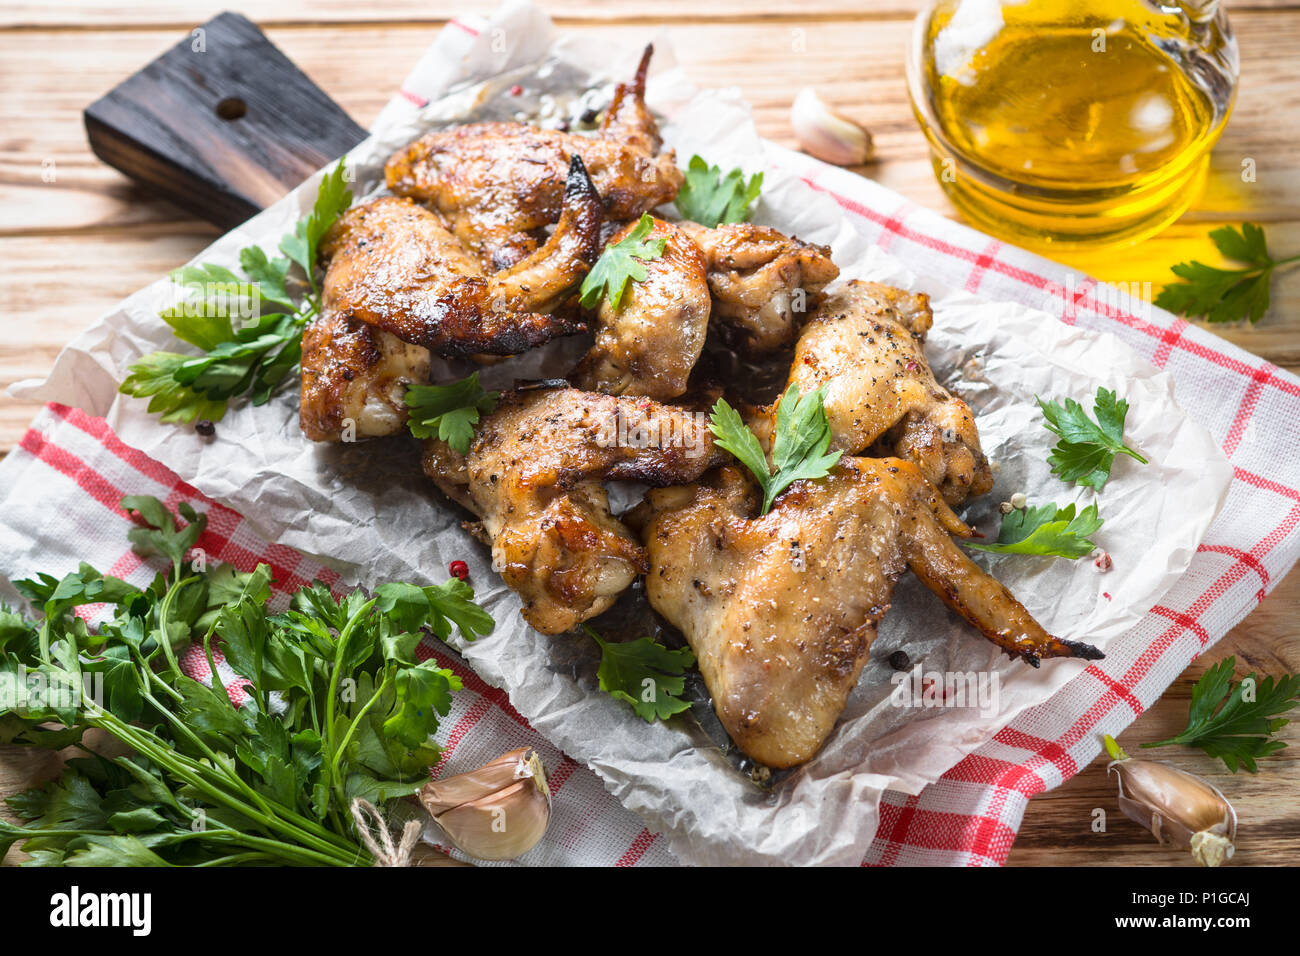 Fried chicken wings of barbecue on wooden table. Stock Photo